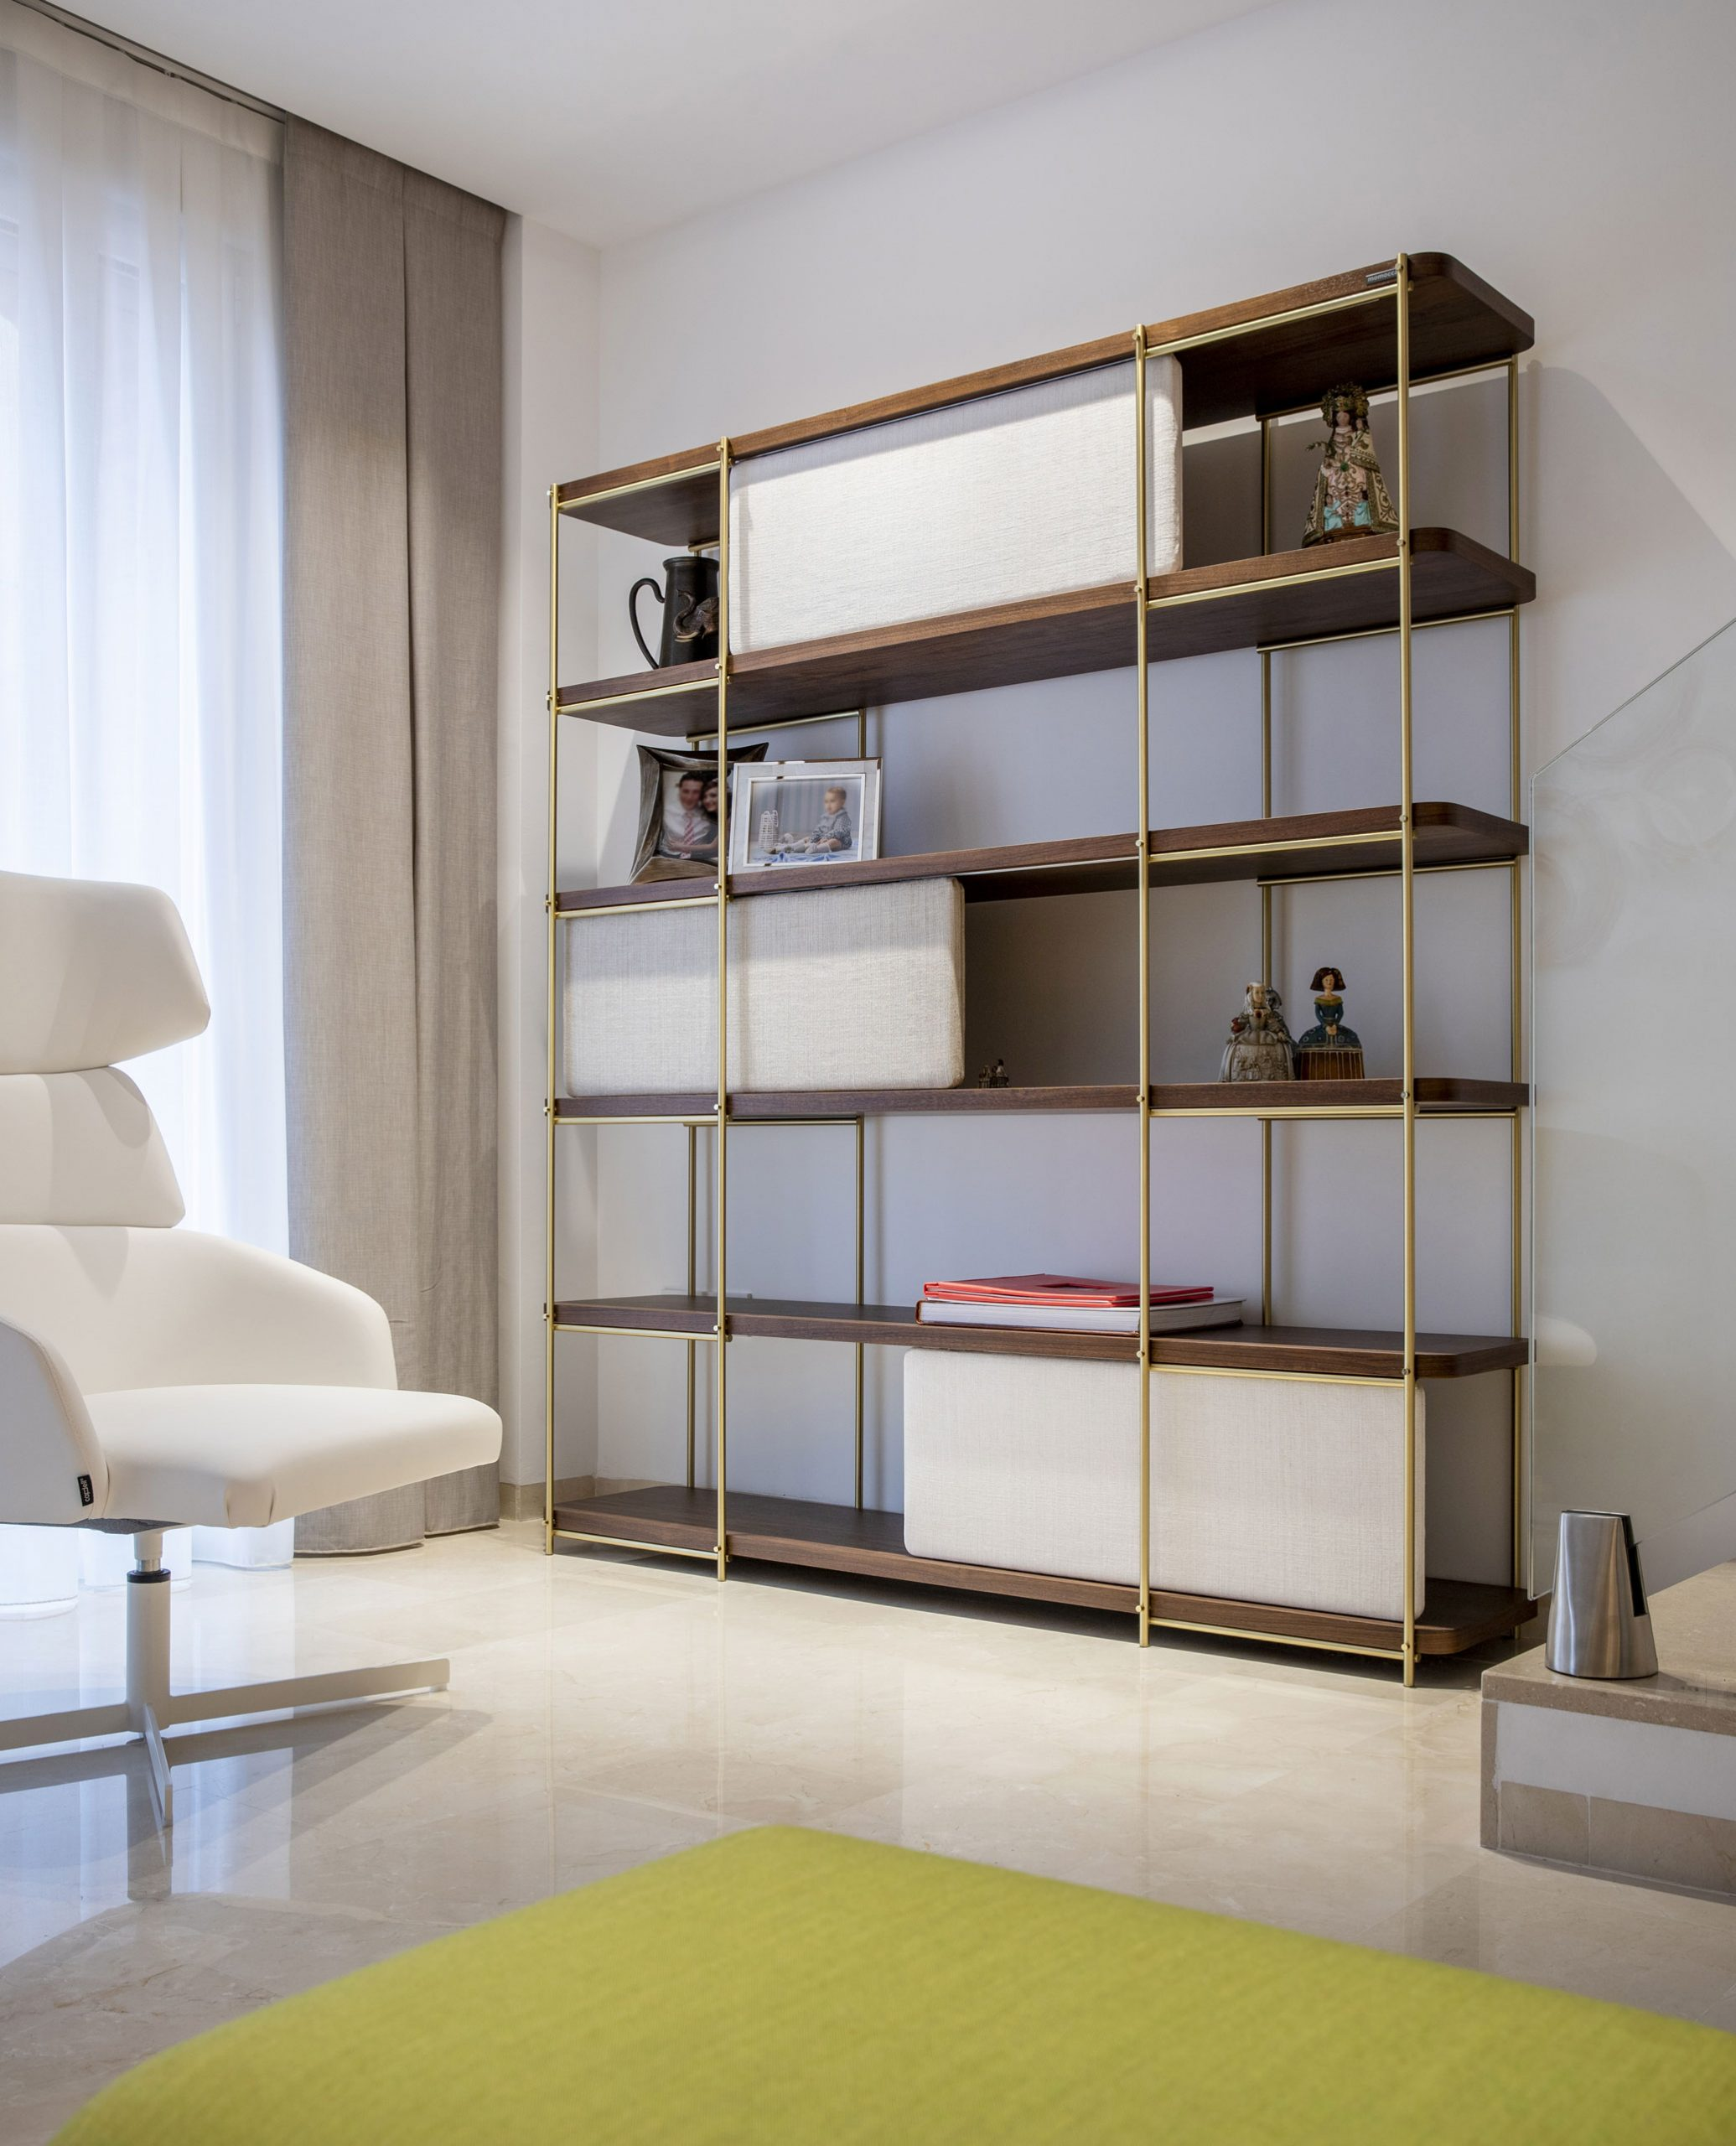 Decoration neutral colours - Julia Collection. Project by Miguel calvo